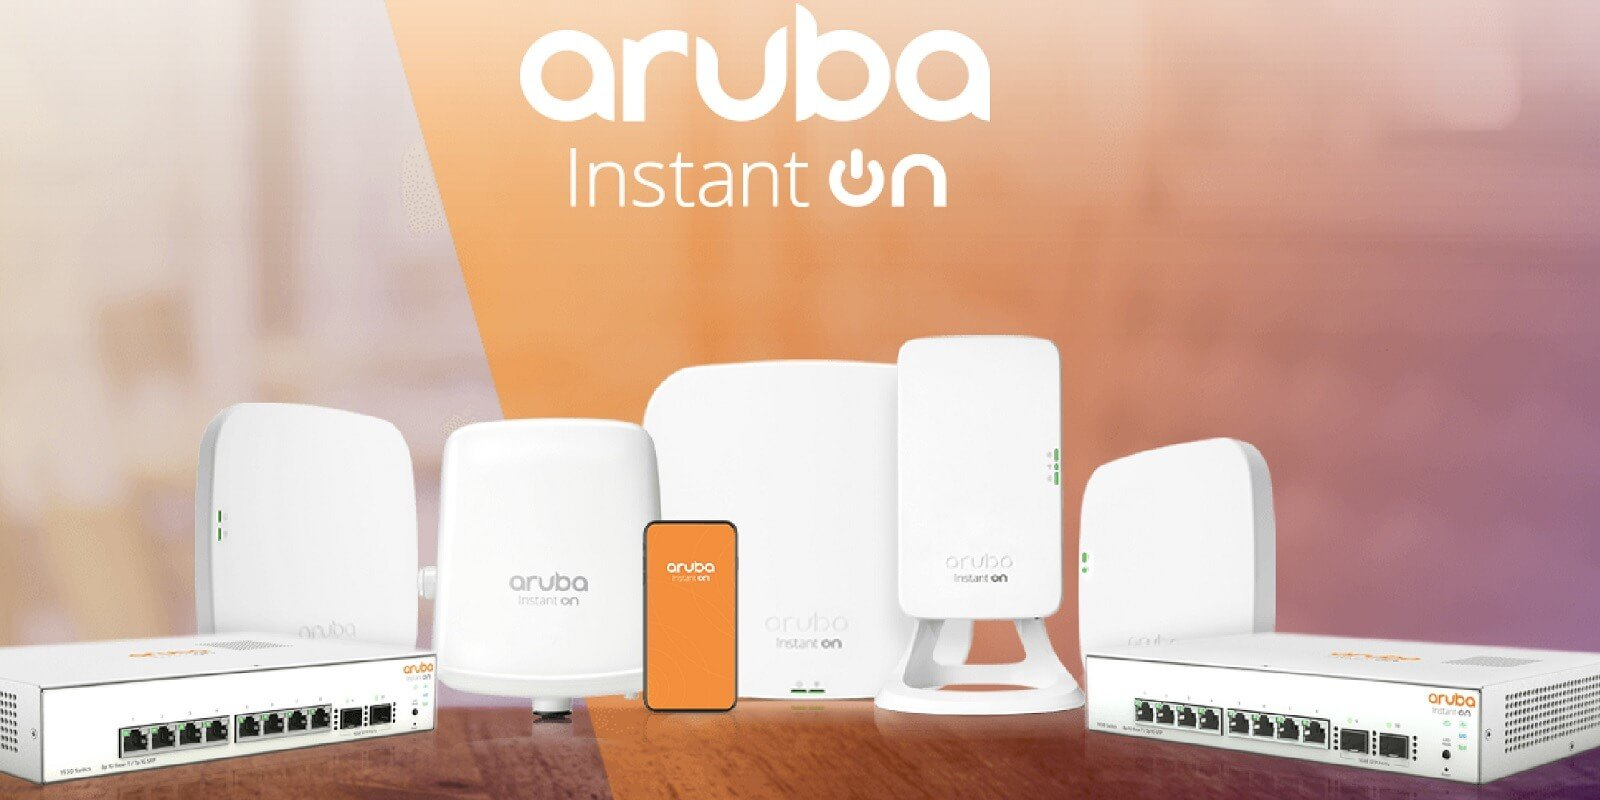 What Is Aruba Instant On? APs & Network Switches for Small Business